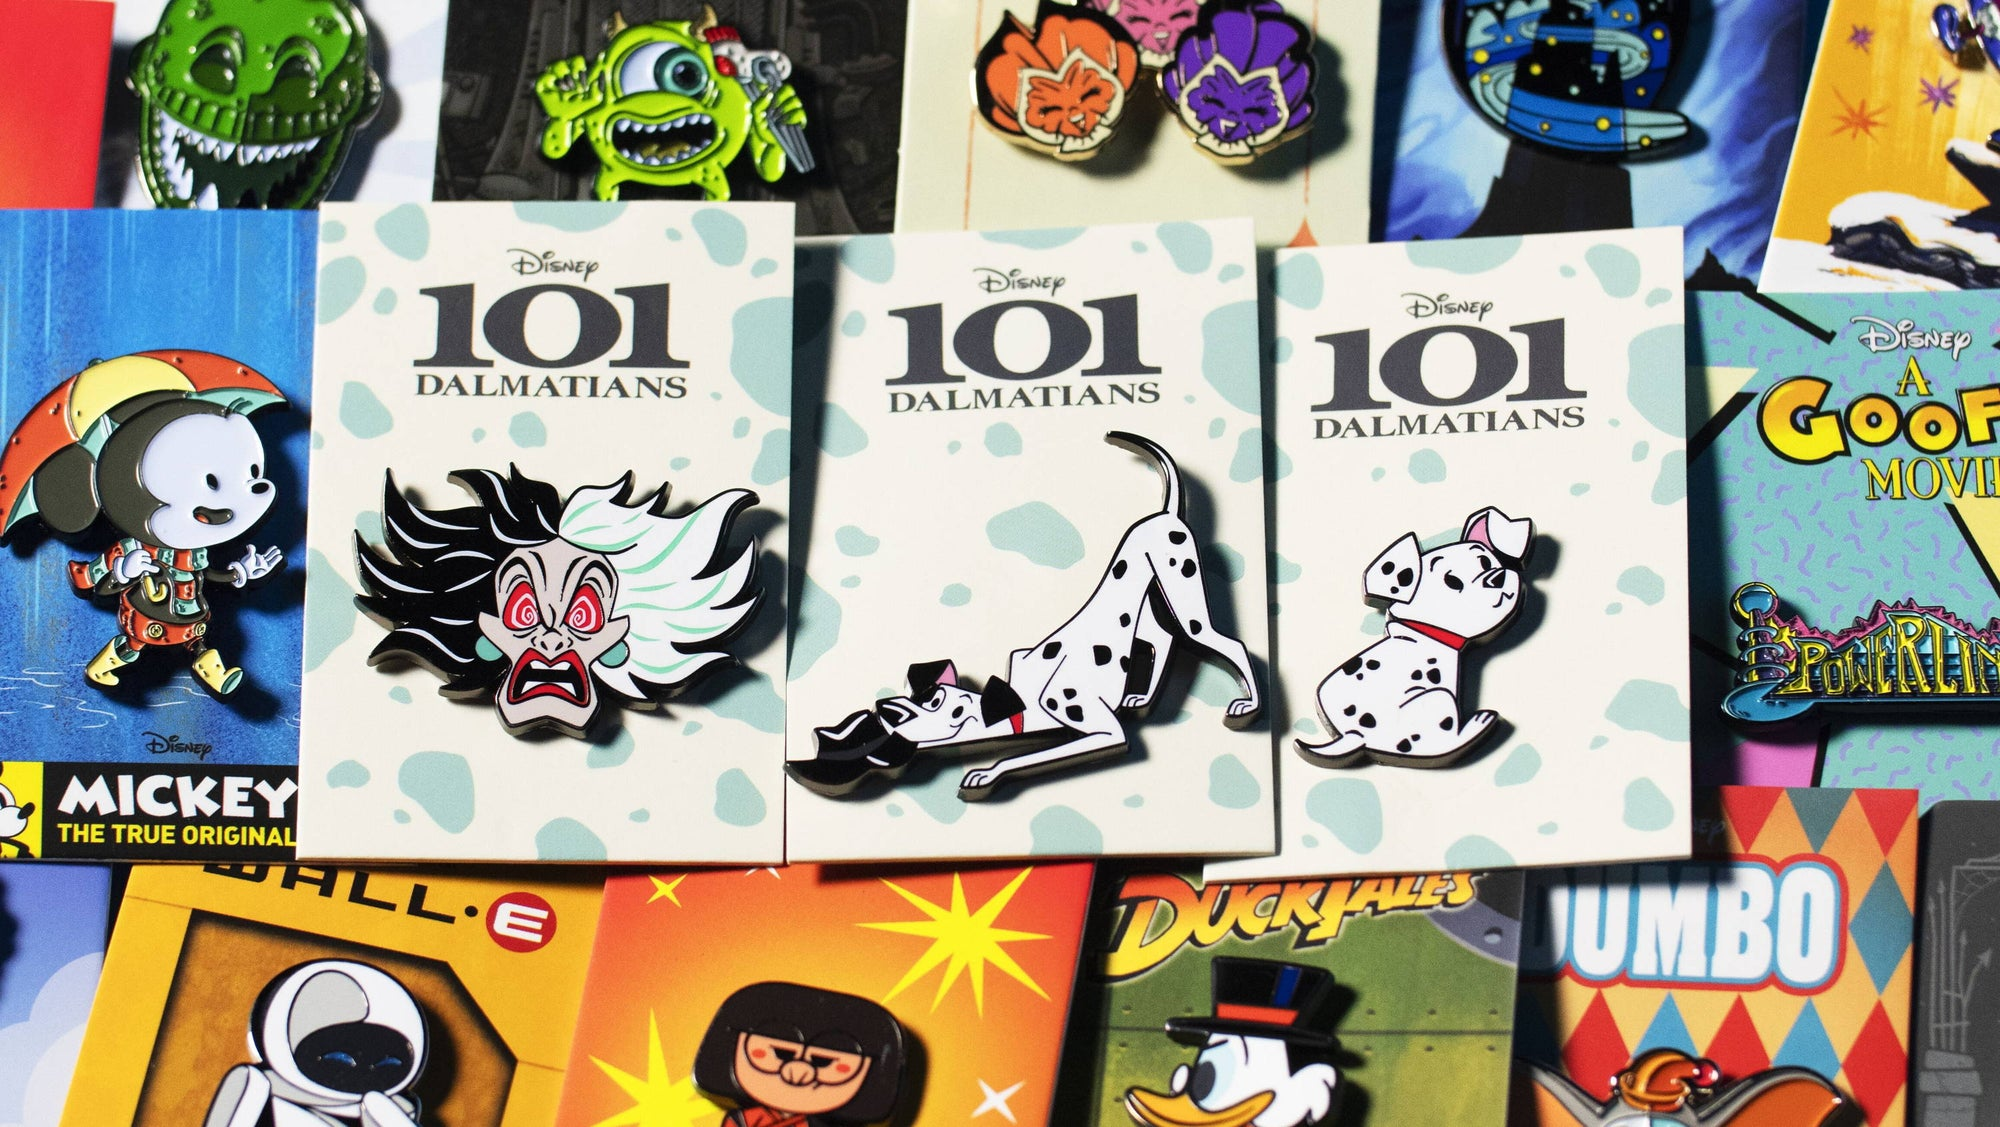 Check Out This All-New 101 Dalmation Inspired Pin Collection From Mondo!